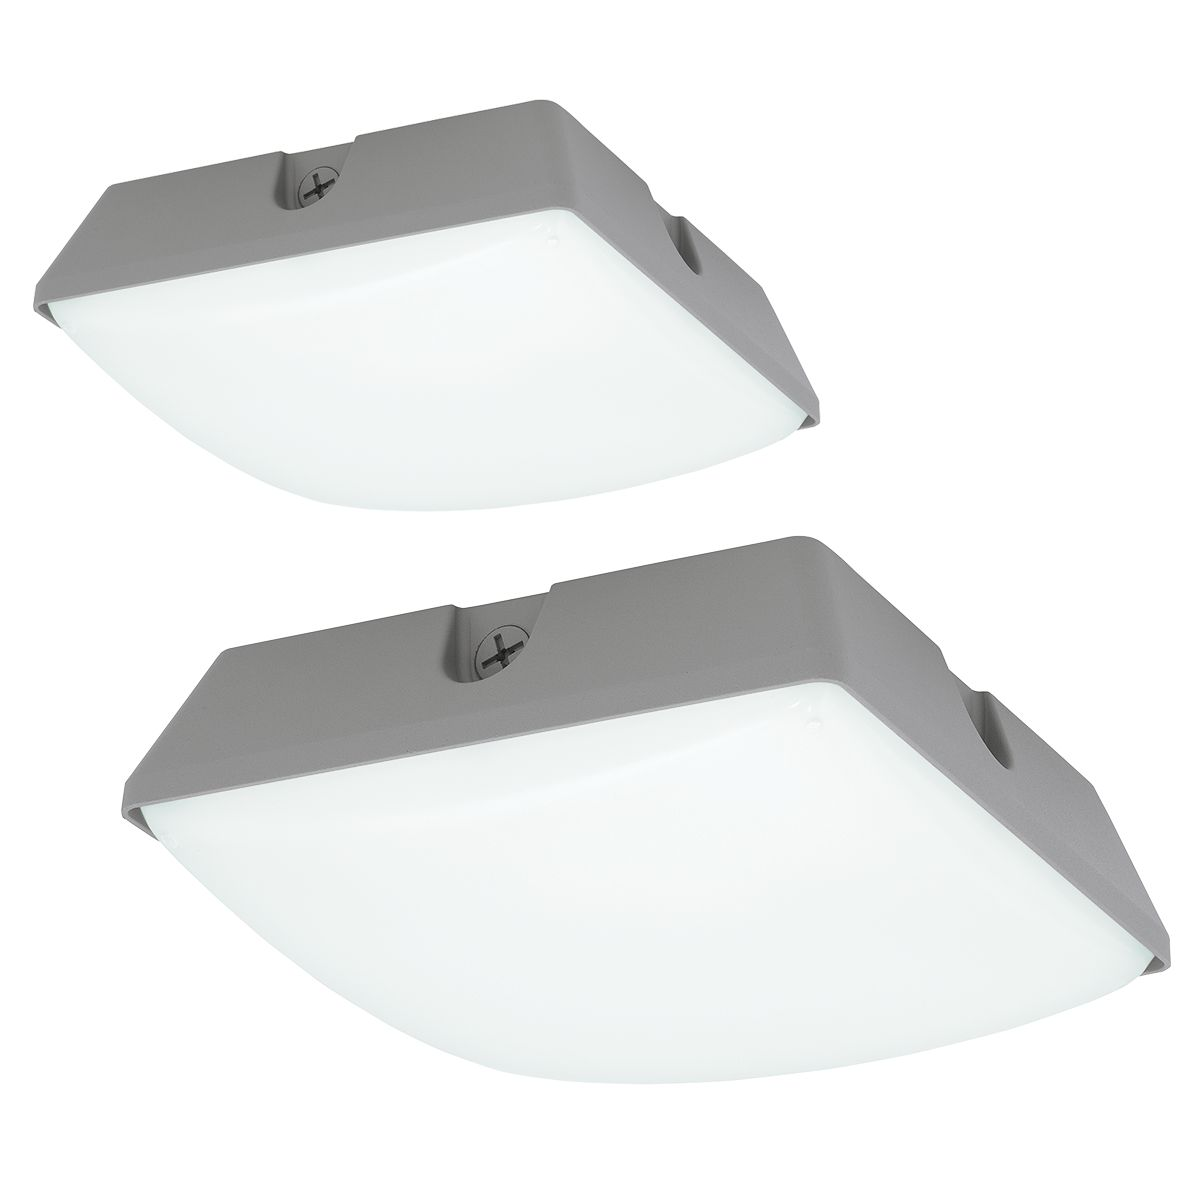 Lsq lumasquare series ceiling canopy garage commercial by hubbell outdoor lighting collection name lumasquare hollsqprodimage aloadofball Choice Image